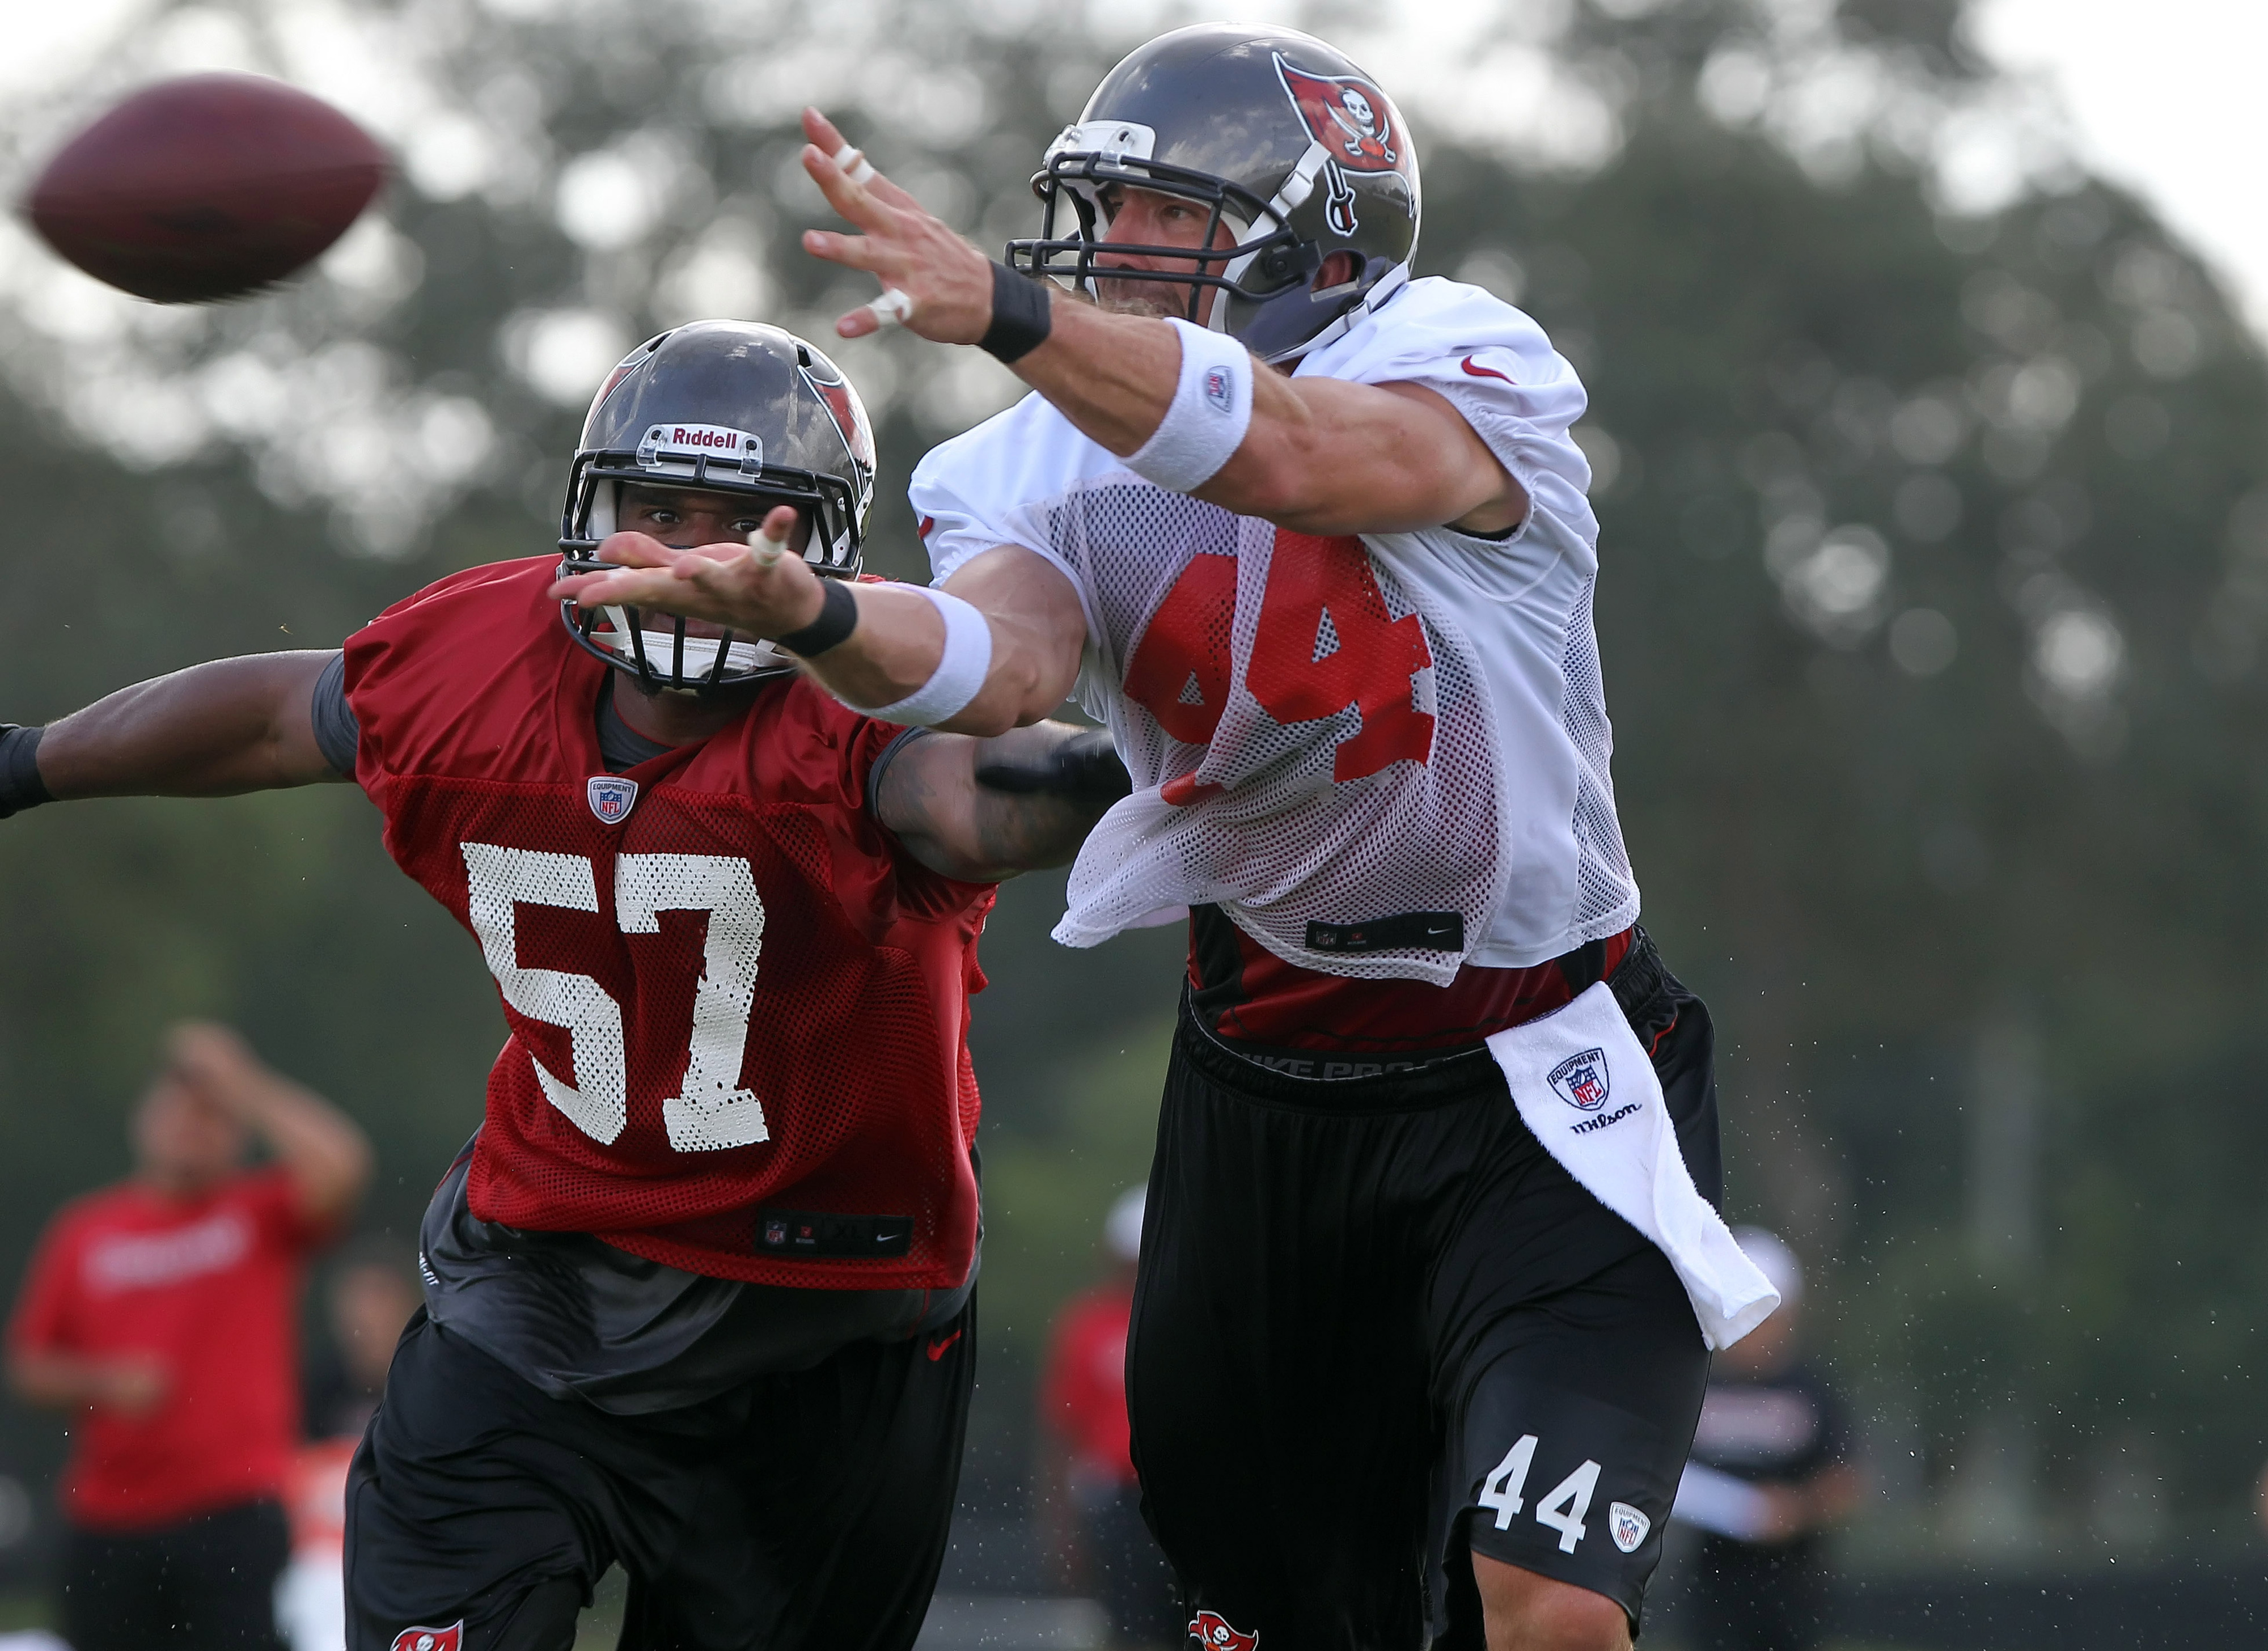 July 28, 2012; Tampa, FL, USA;  Tampa Bay Buccaneers tight end Dallas Clark (44) attempts to catch the ball as linebacker Adam Hayward (57) defends during training camp at One Buc Place. Mandatory Credit: Kim Klement-US PRESSWIRE